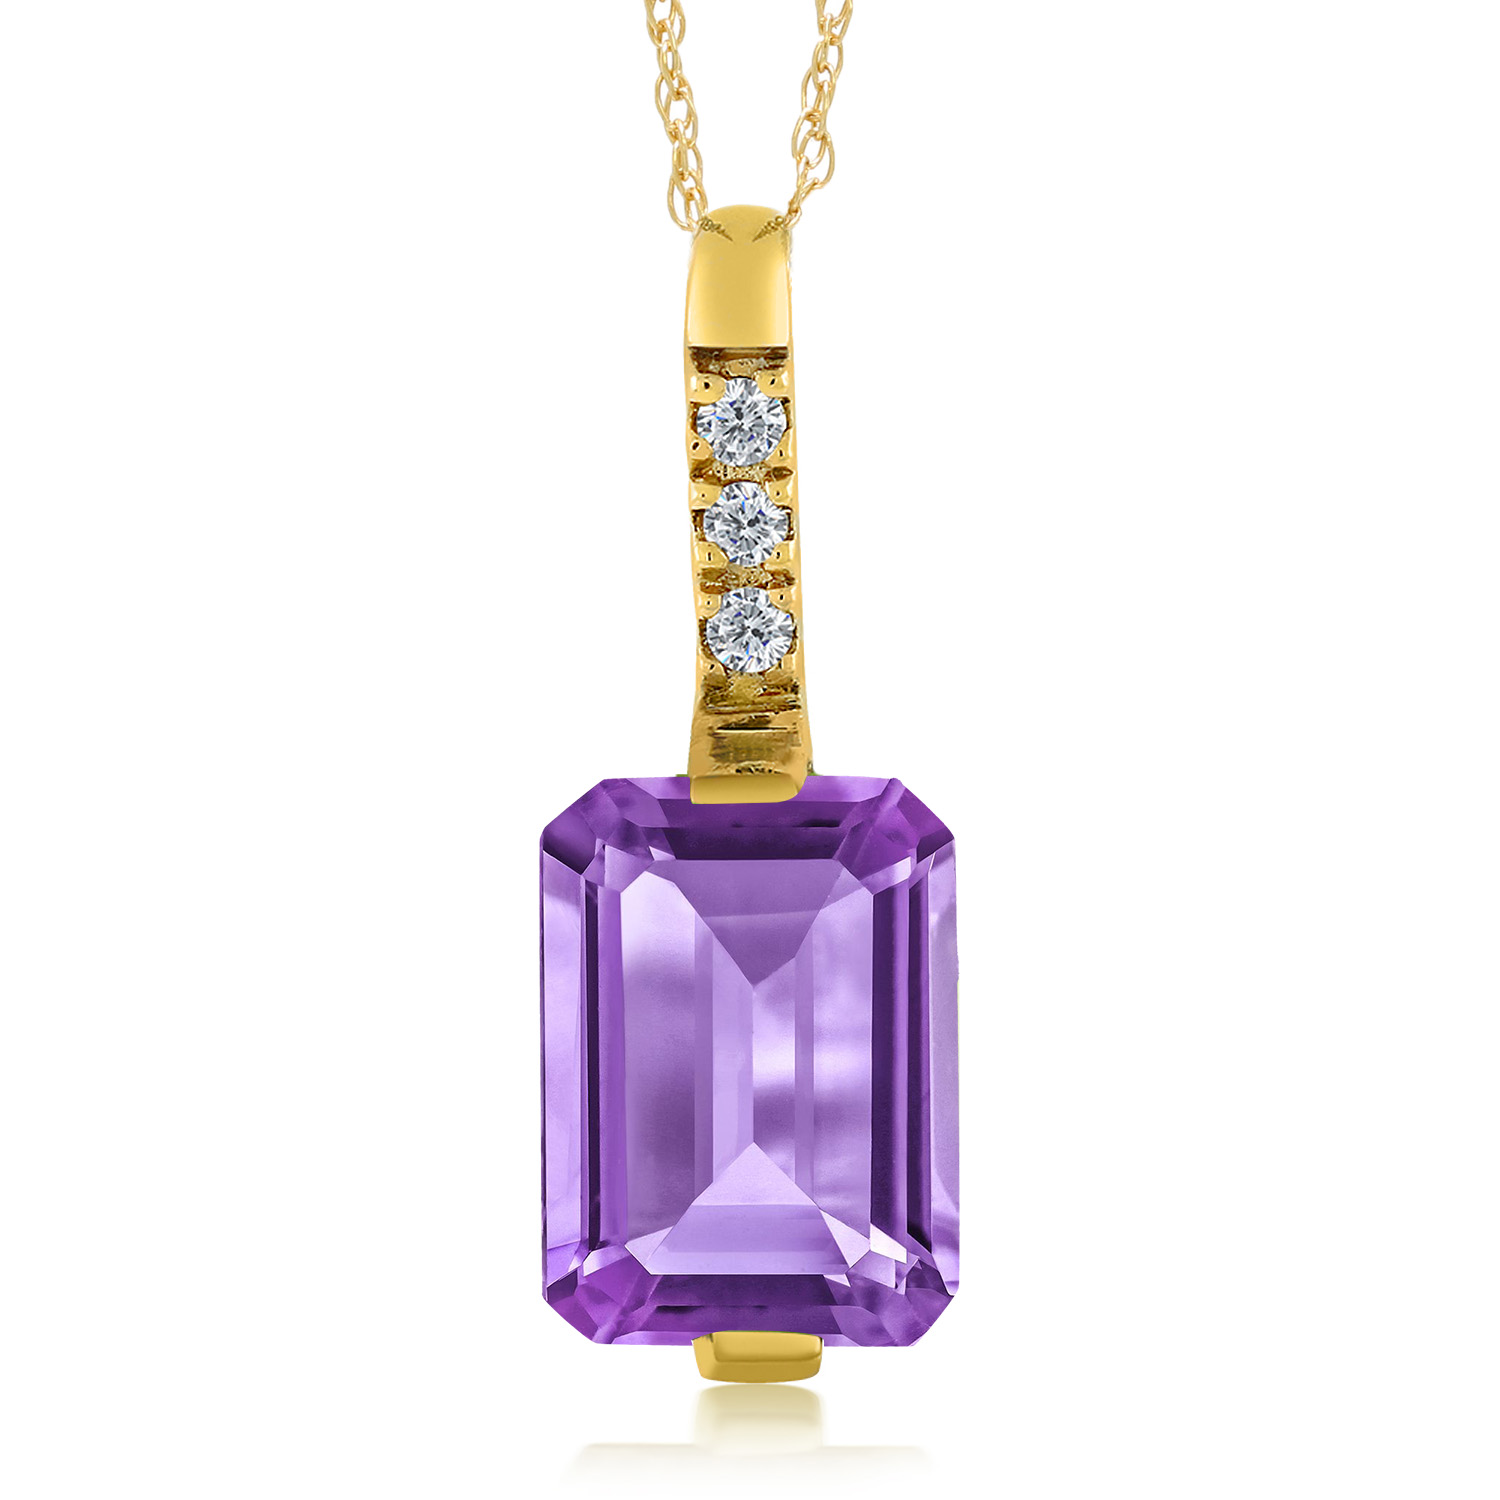 images on a amethyst jewels best jewelry mid necklaces stone pendant and bcurrierrealtor century demi diamond precious purple necklace parure comprising